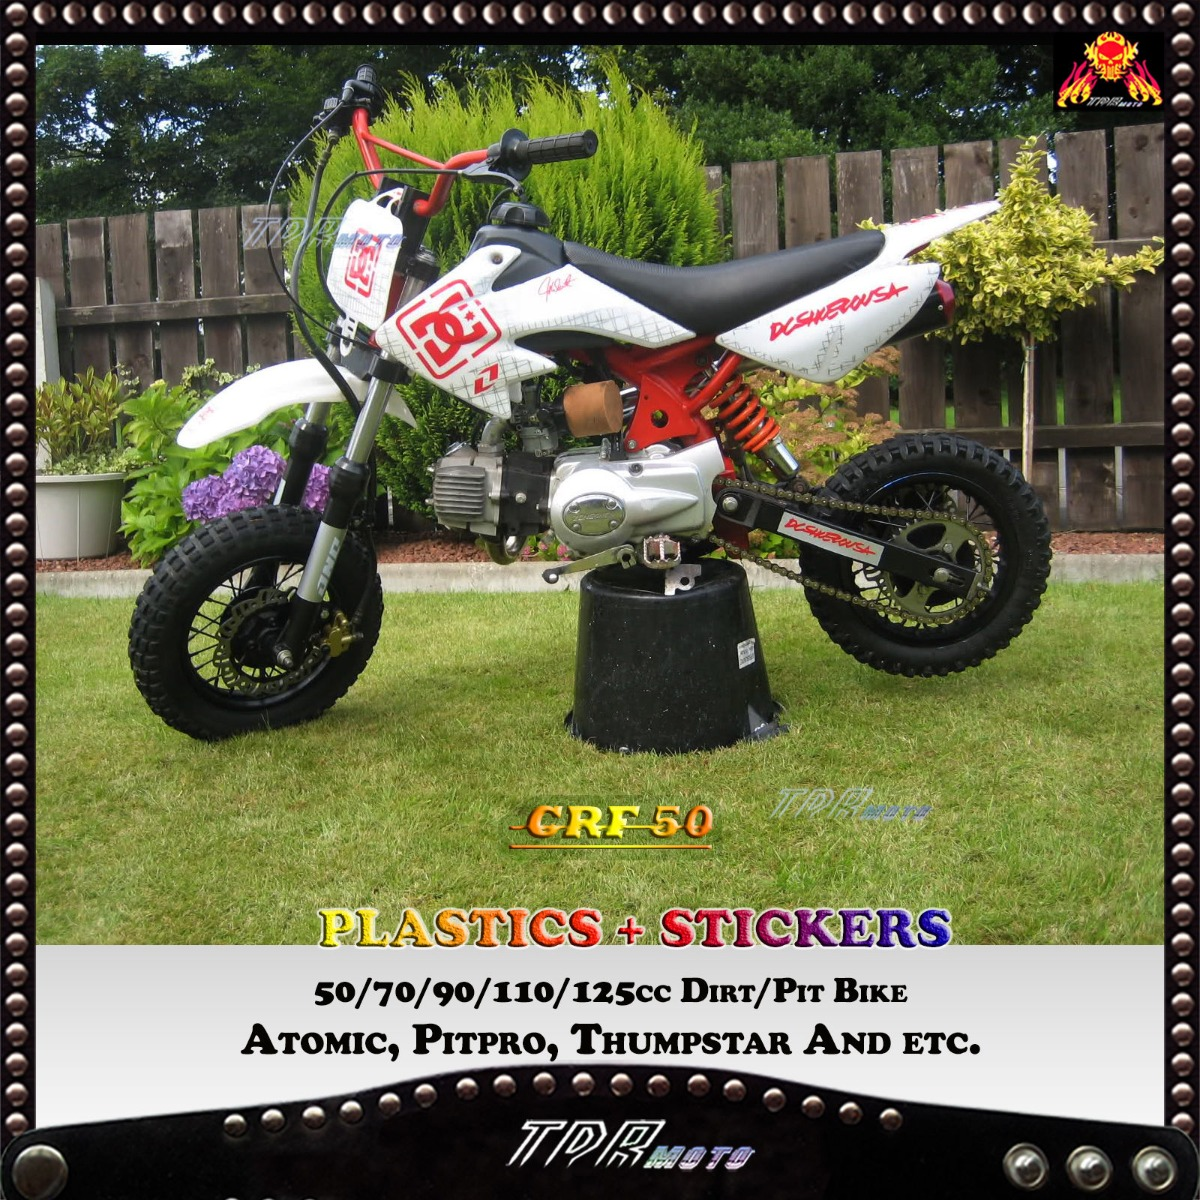 White 50cc Honda Pit Bike | Control Cables & Wiring Diagram on basic brake system diagrams, easy sketches, dc motor hookup diagrams, auto repair manual diagrams, honda shadow 1100 carburetor diagrams, audio transistor circuit diagrams, ford manual transmission parts diagrams, easy plumbing diagrams, chopper diagrams, ezgo golf cart parts diagrams, easy drawings,